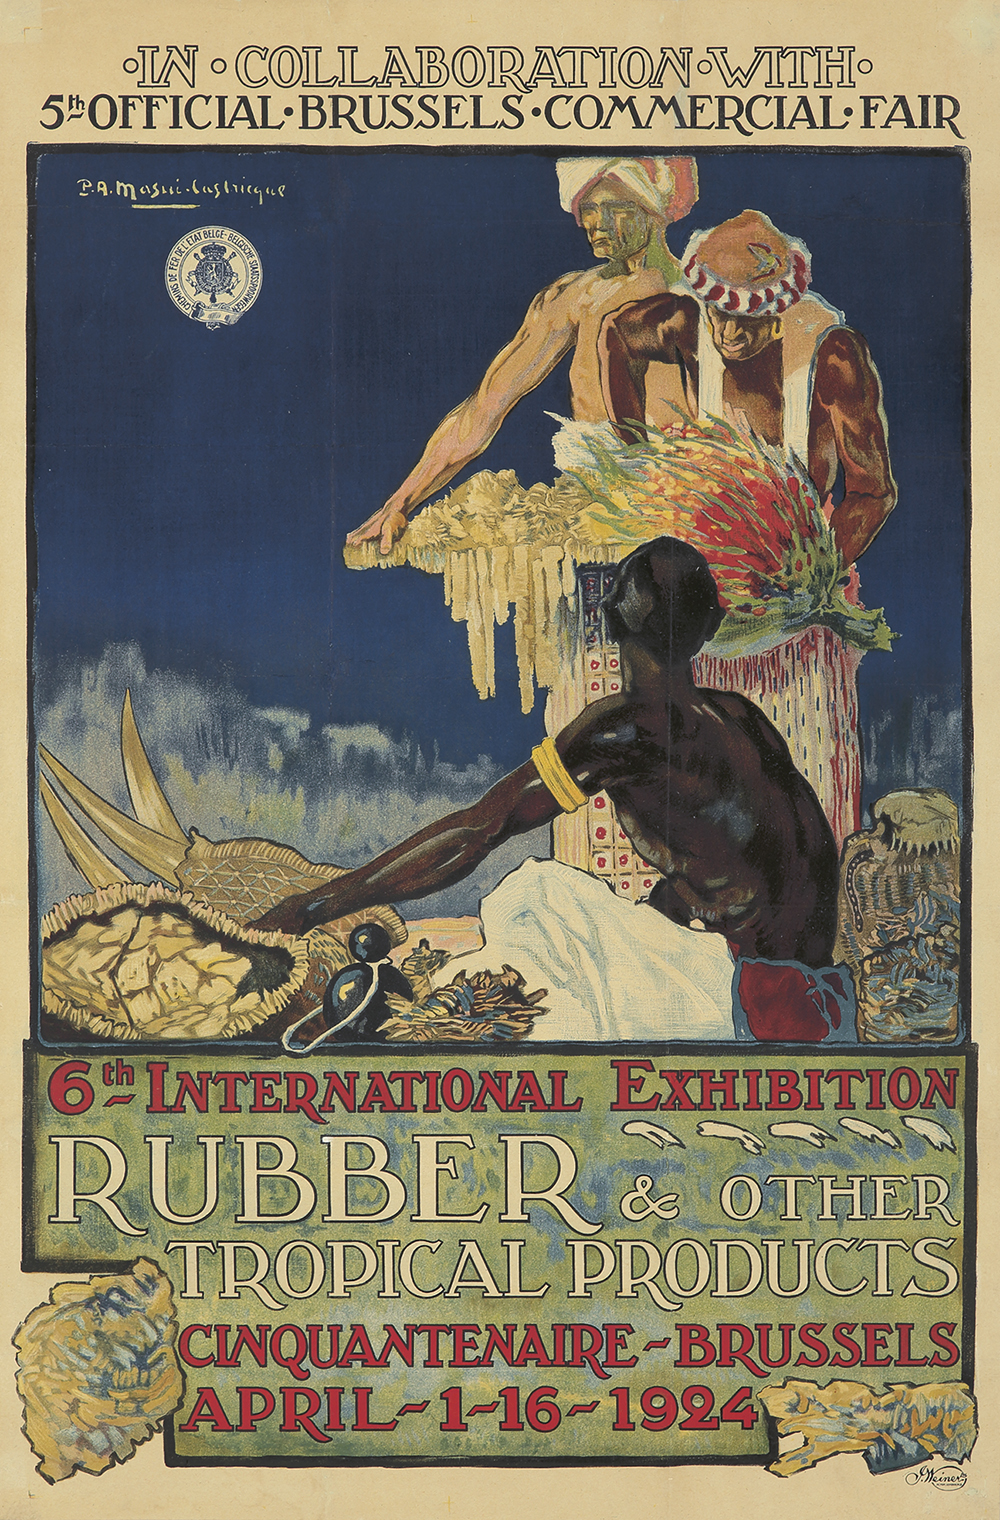 354. 6th International Exhibition/Rubber & Other Tropical Products. 1924.